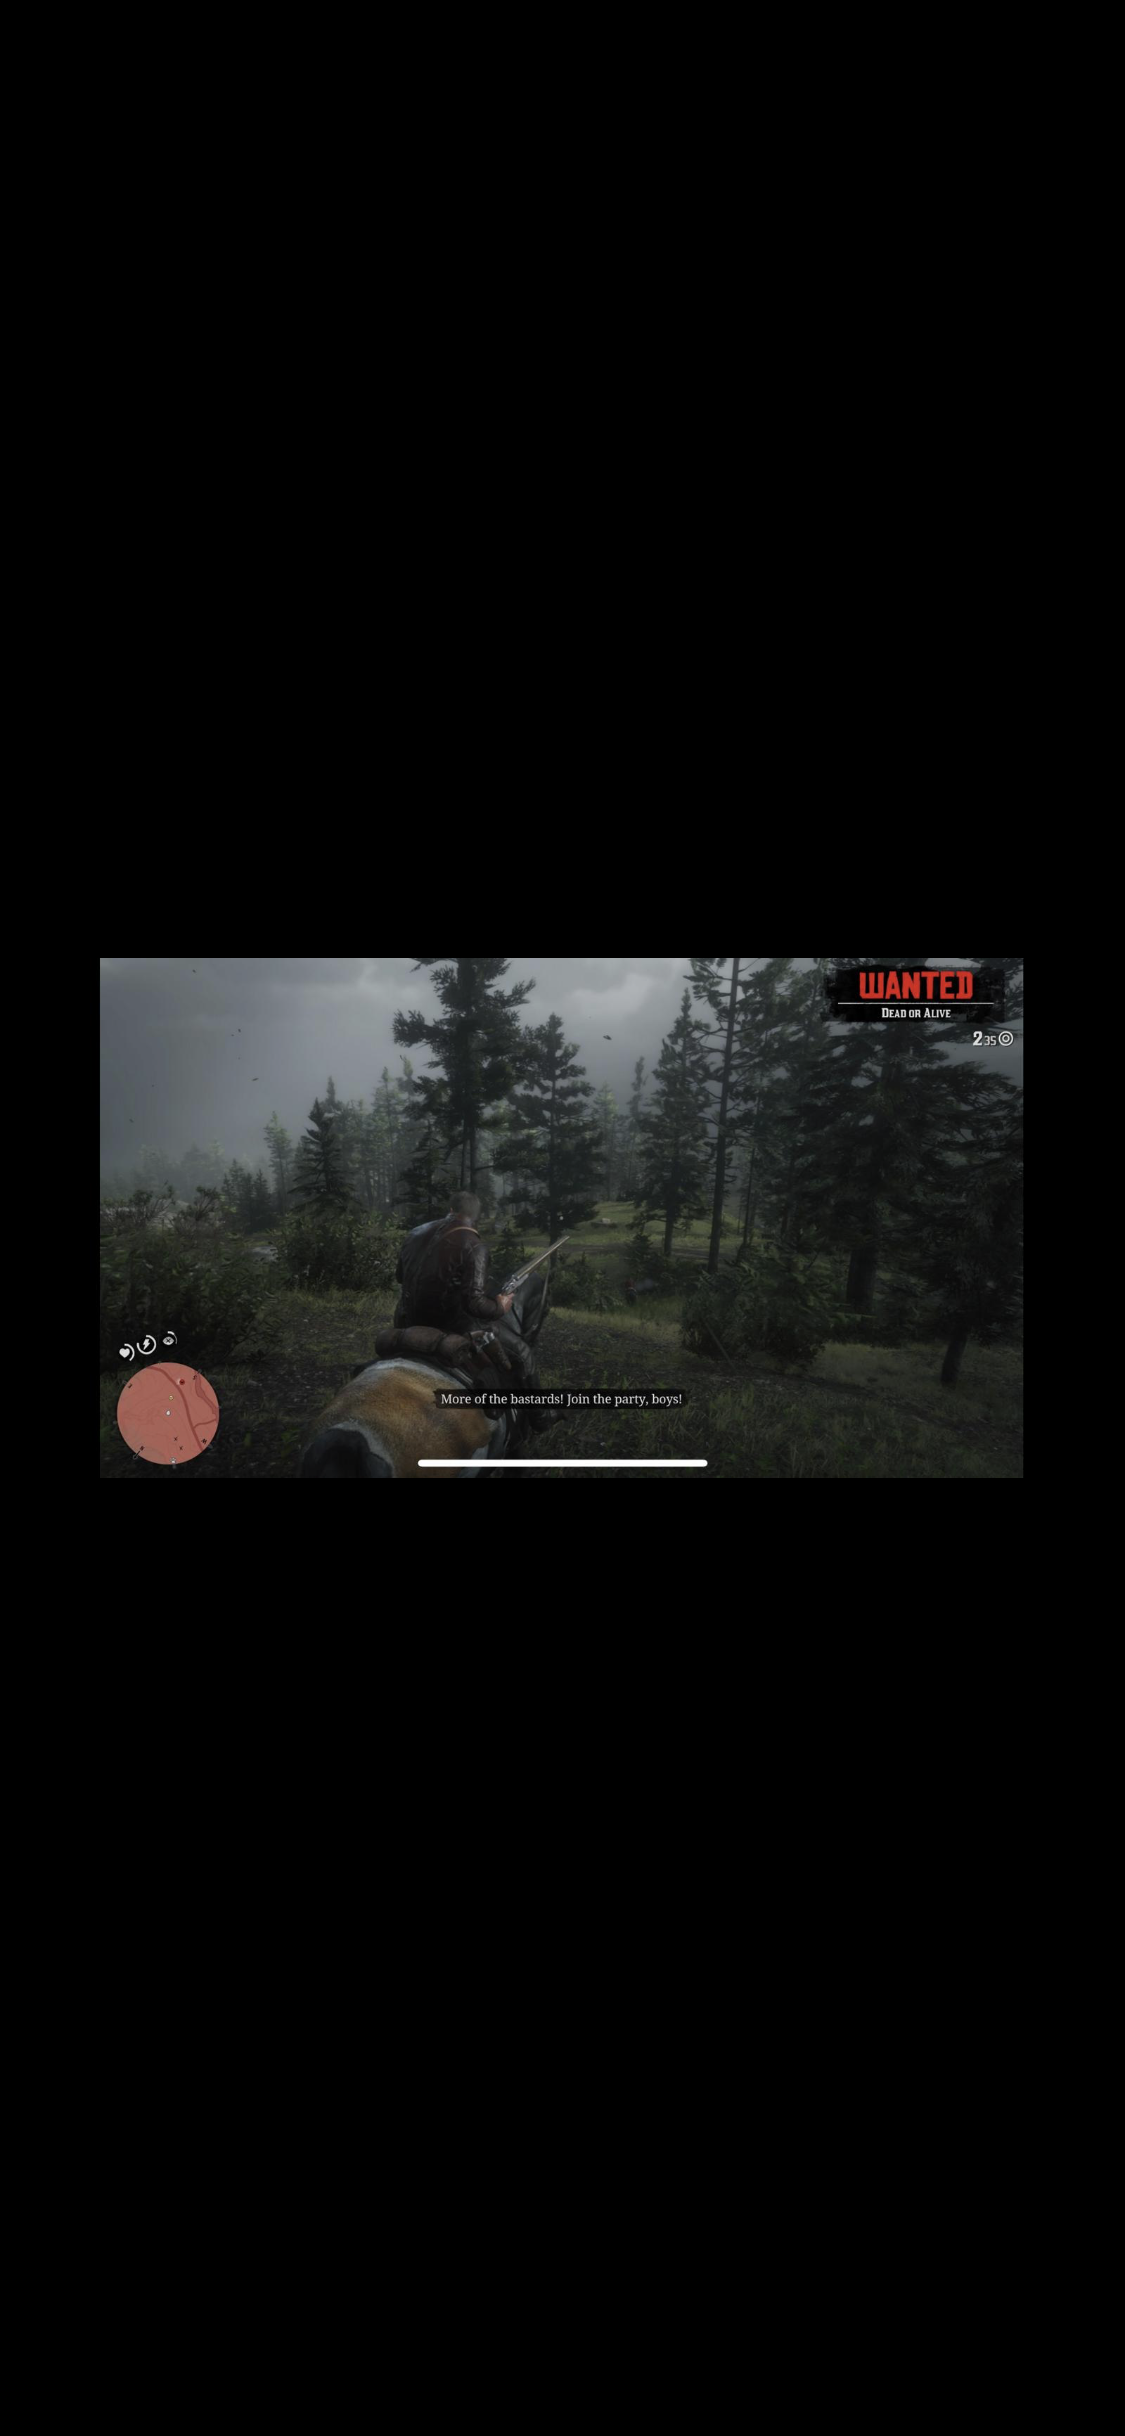 Rdr2 graphics blurry PS4 Pro - Red Dead Redemption 2 - RDR2 org Forums